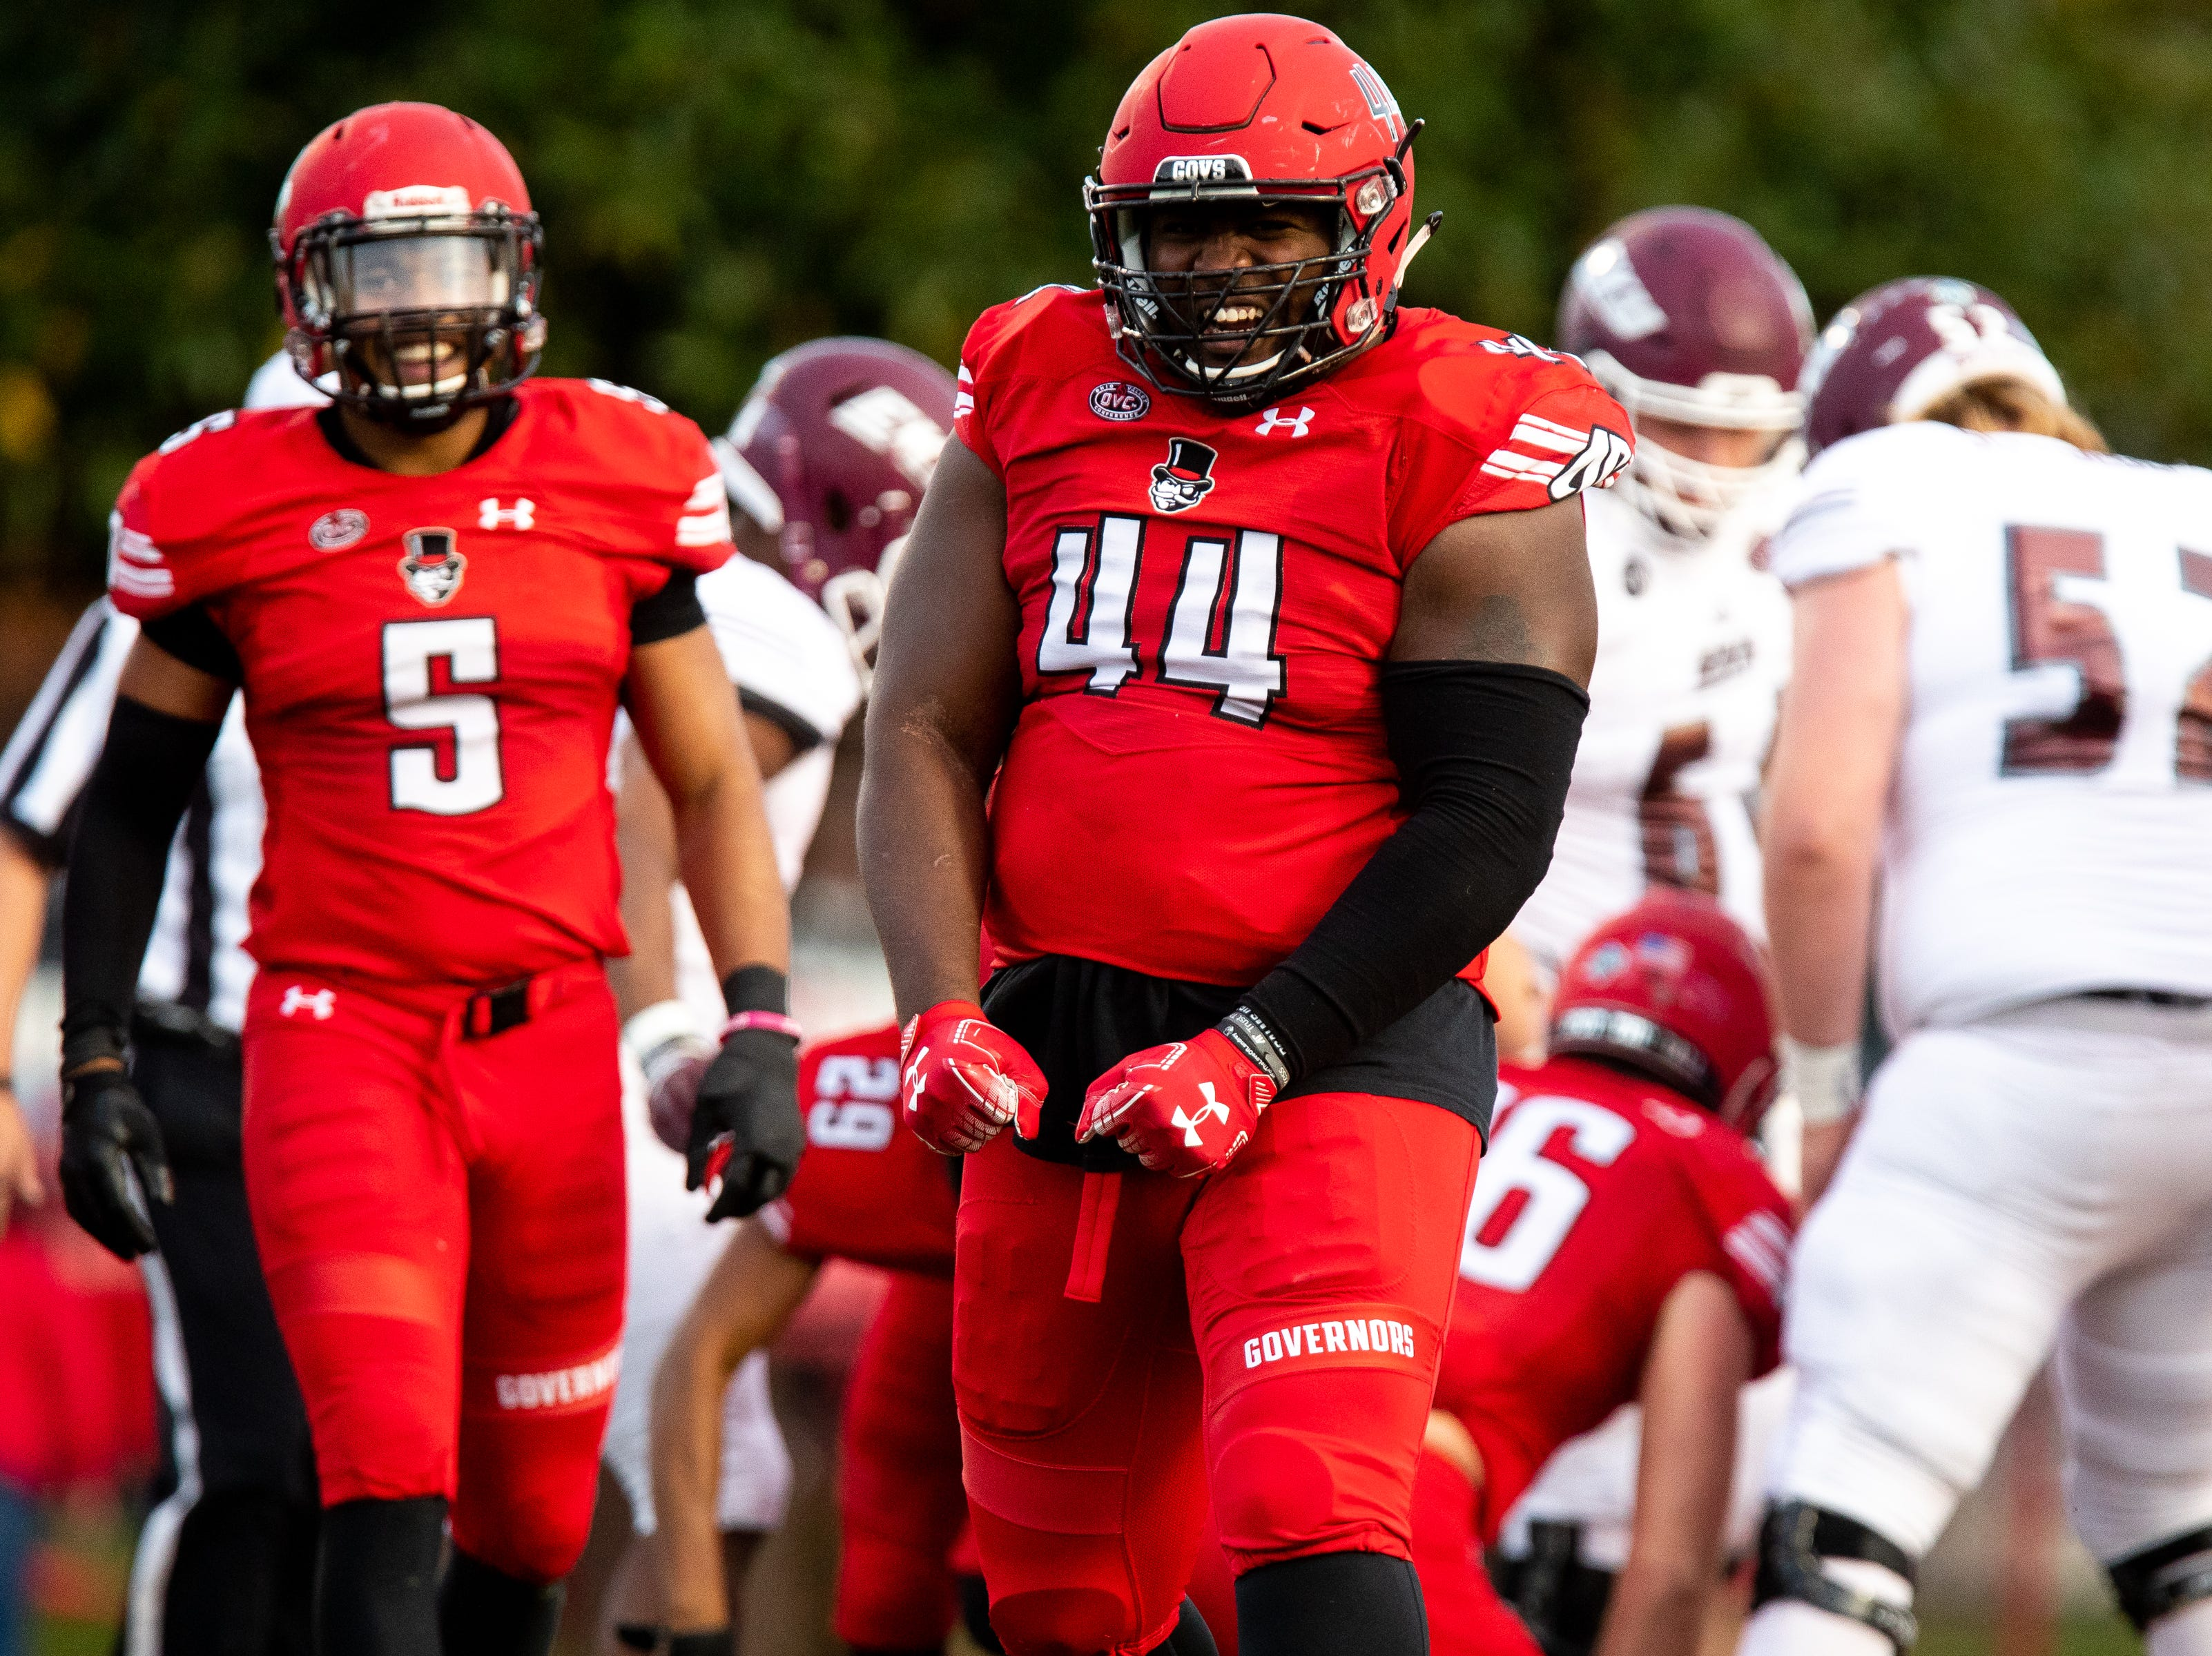 Austin Peay Governors defensive lineman Theron Hodges (44) celebrates after a tackle during the first half at Fortera Stadium Saturday, Nov. 3, 2018, in Clarksville, Tenn.